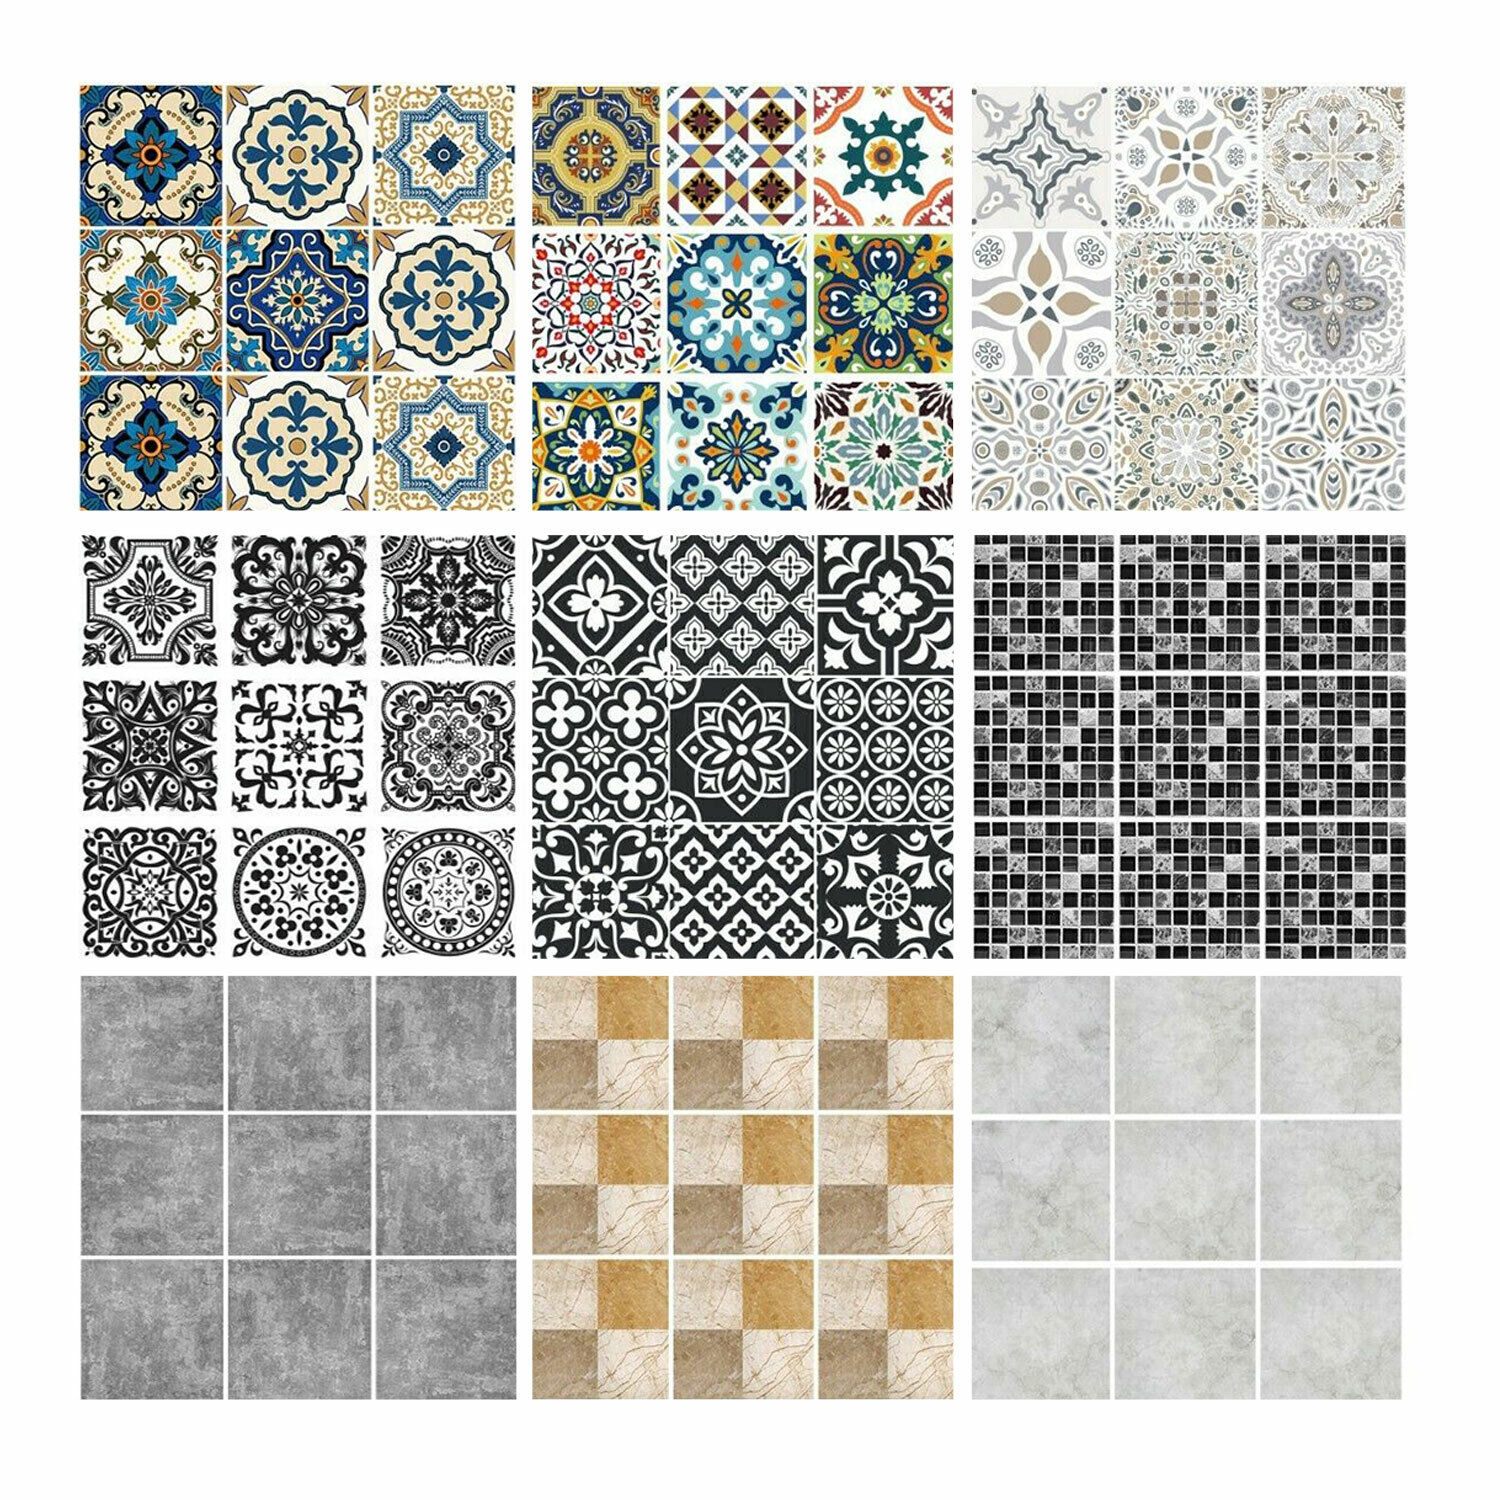 Home Decoration - Tile Wall Stickers Transfers Moroccan Mosaic Pattern Home Self-Adhesive Sticker